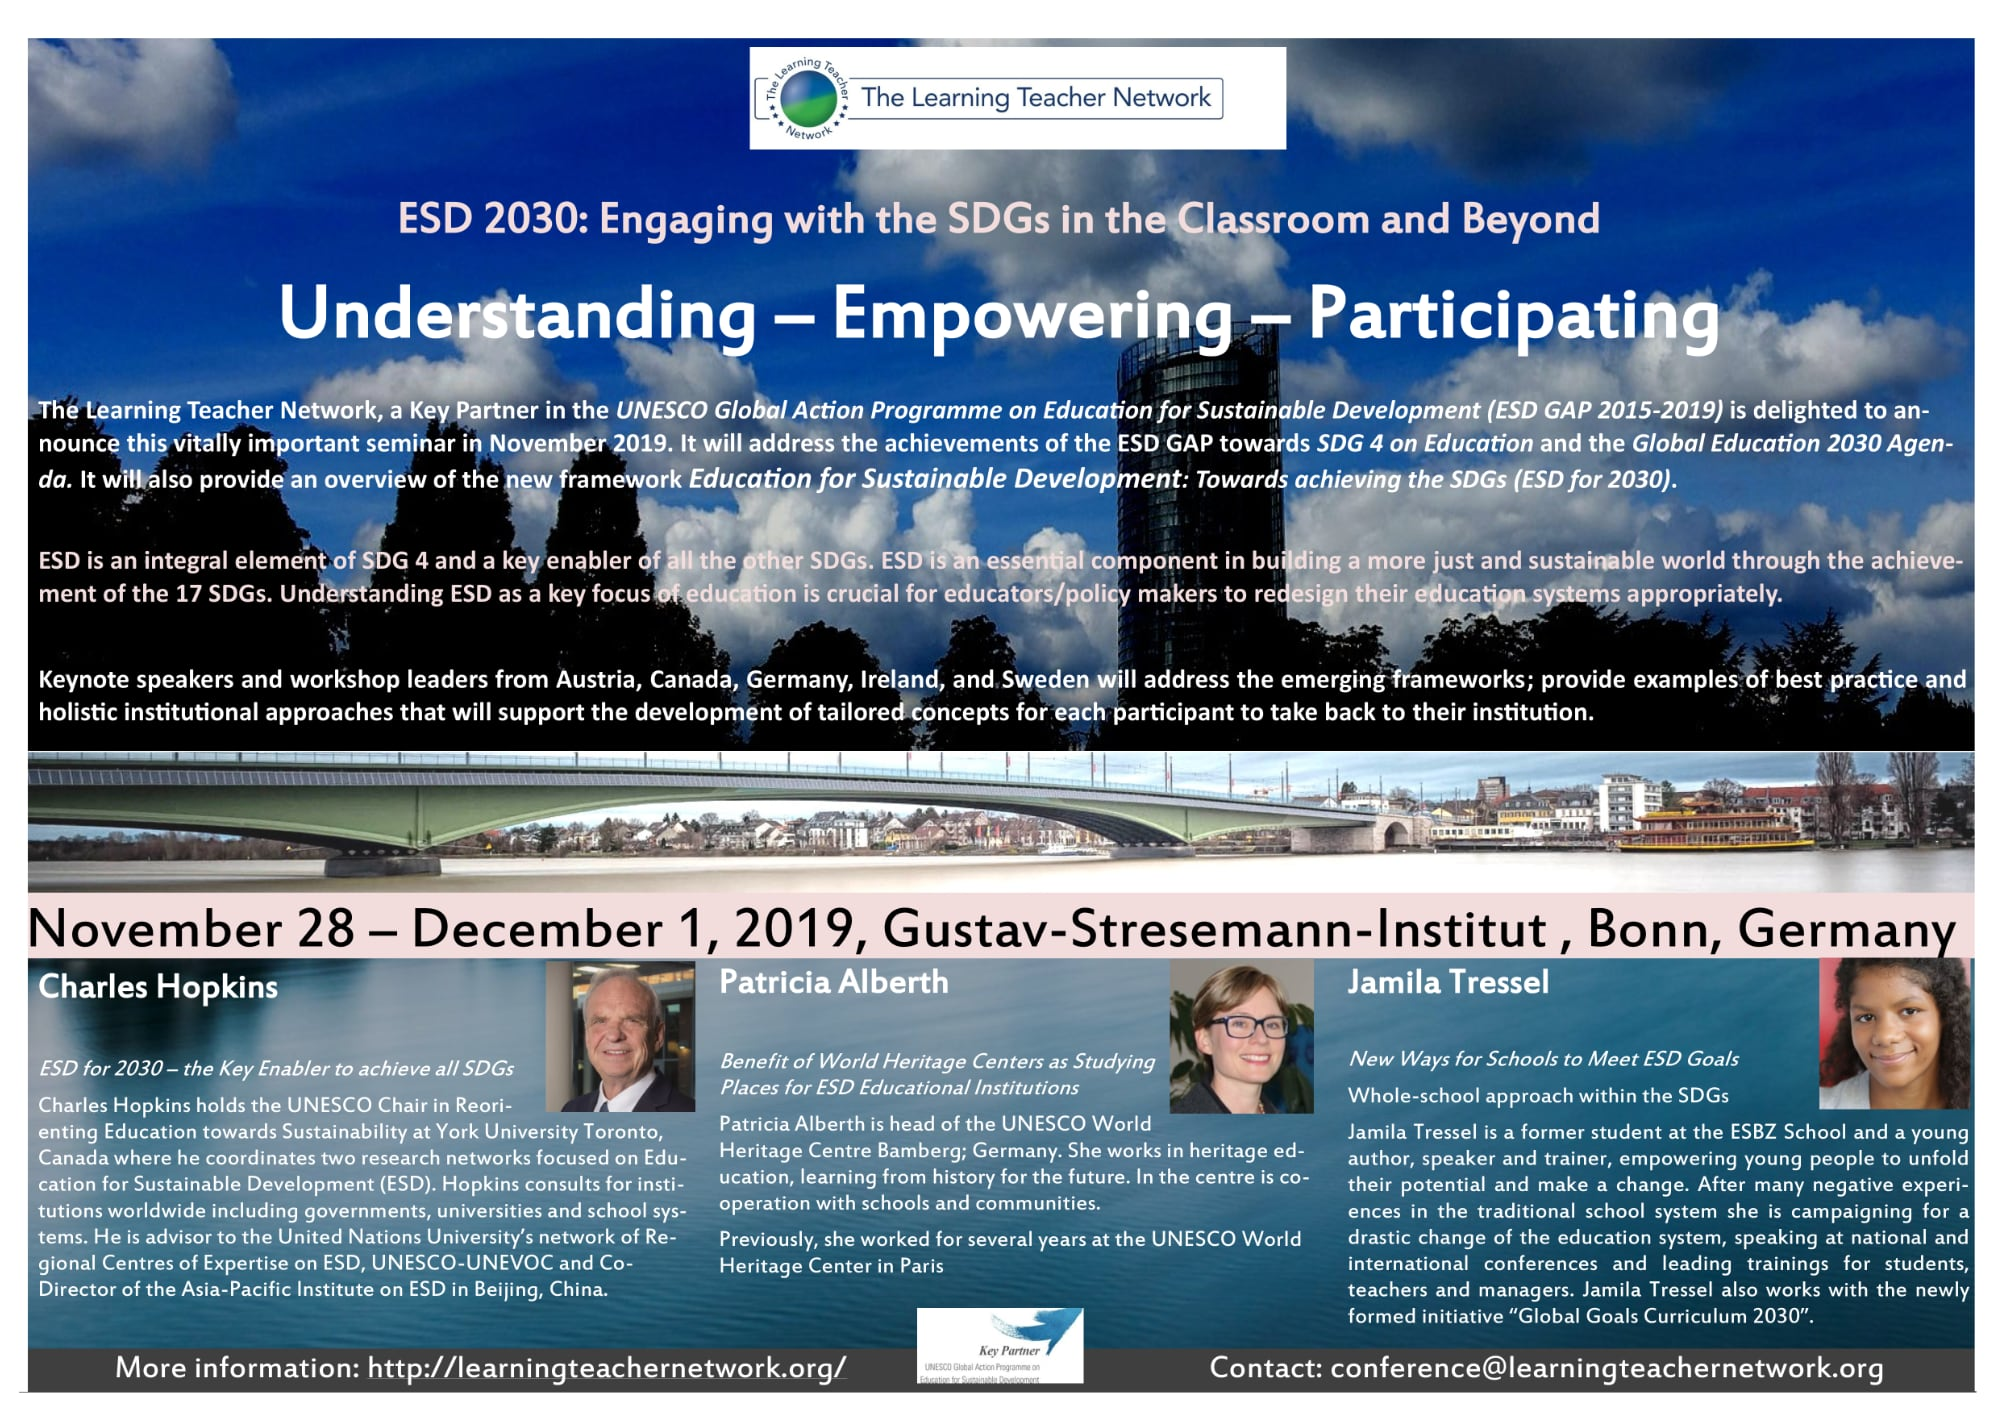 Here's the Poster for Bonn 2019 - ESD 2030: Engaging with